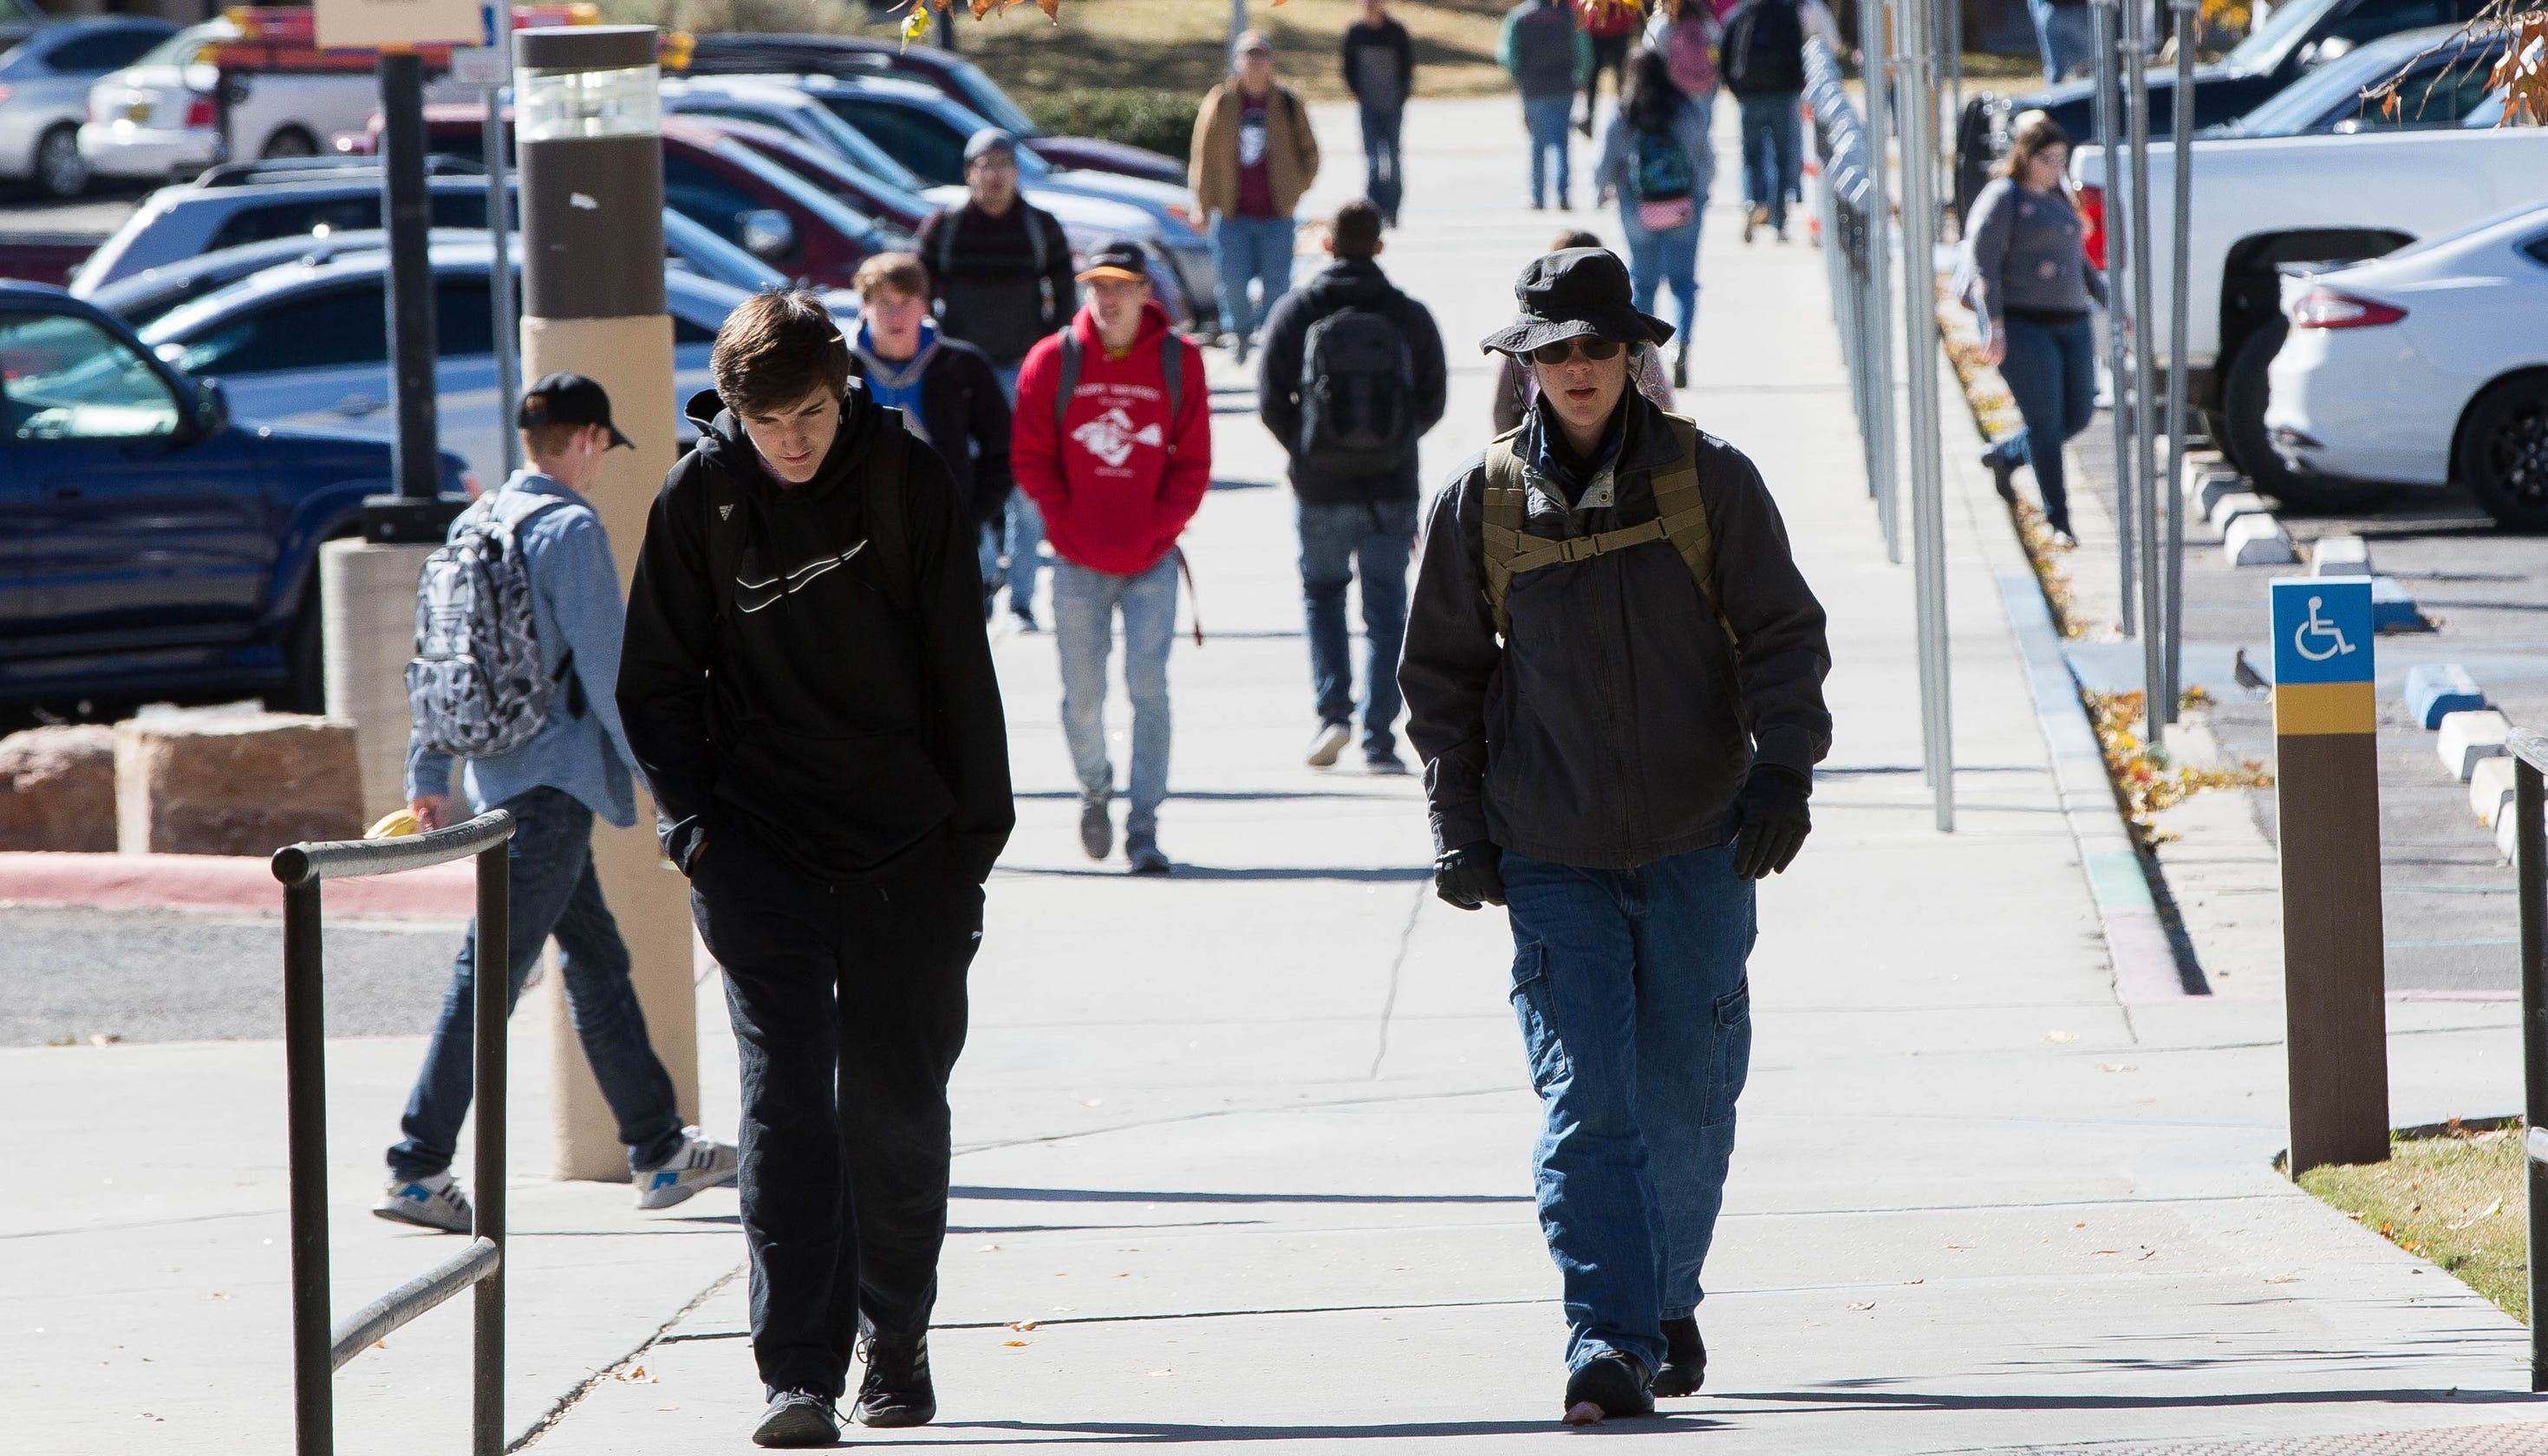 NMSU Regents OK 6 Percent Tuition And Fee Hike For 2019-2020